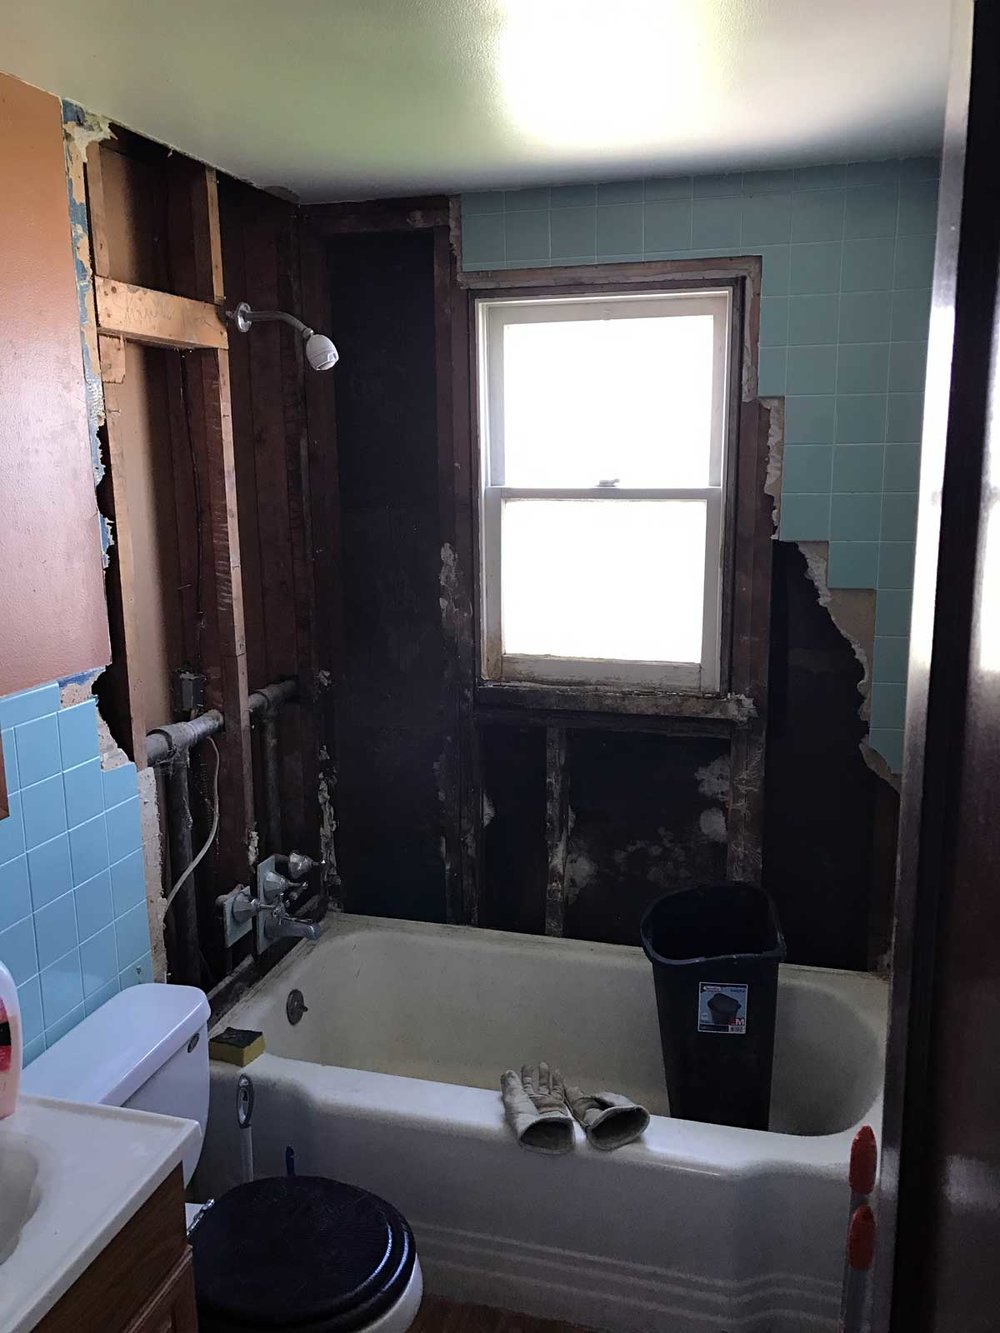 15-Day-Bathroom-Renovation-05.jpg